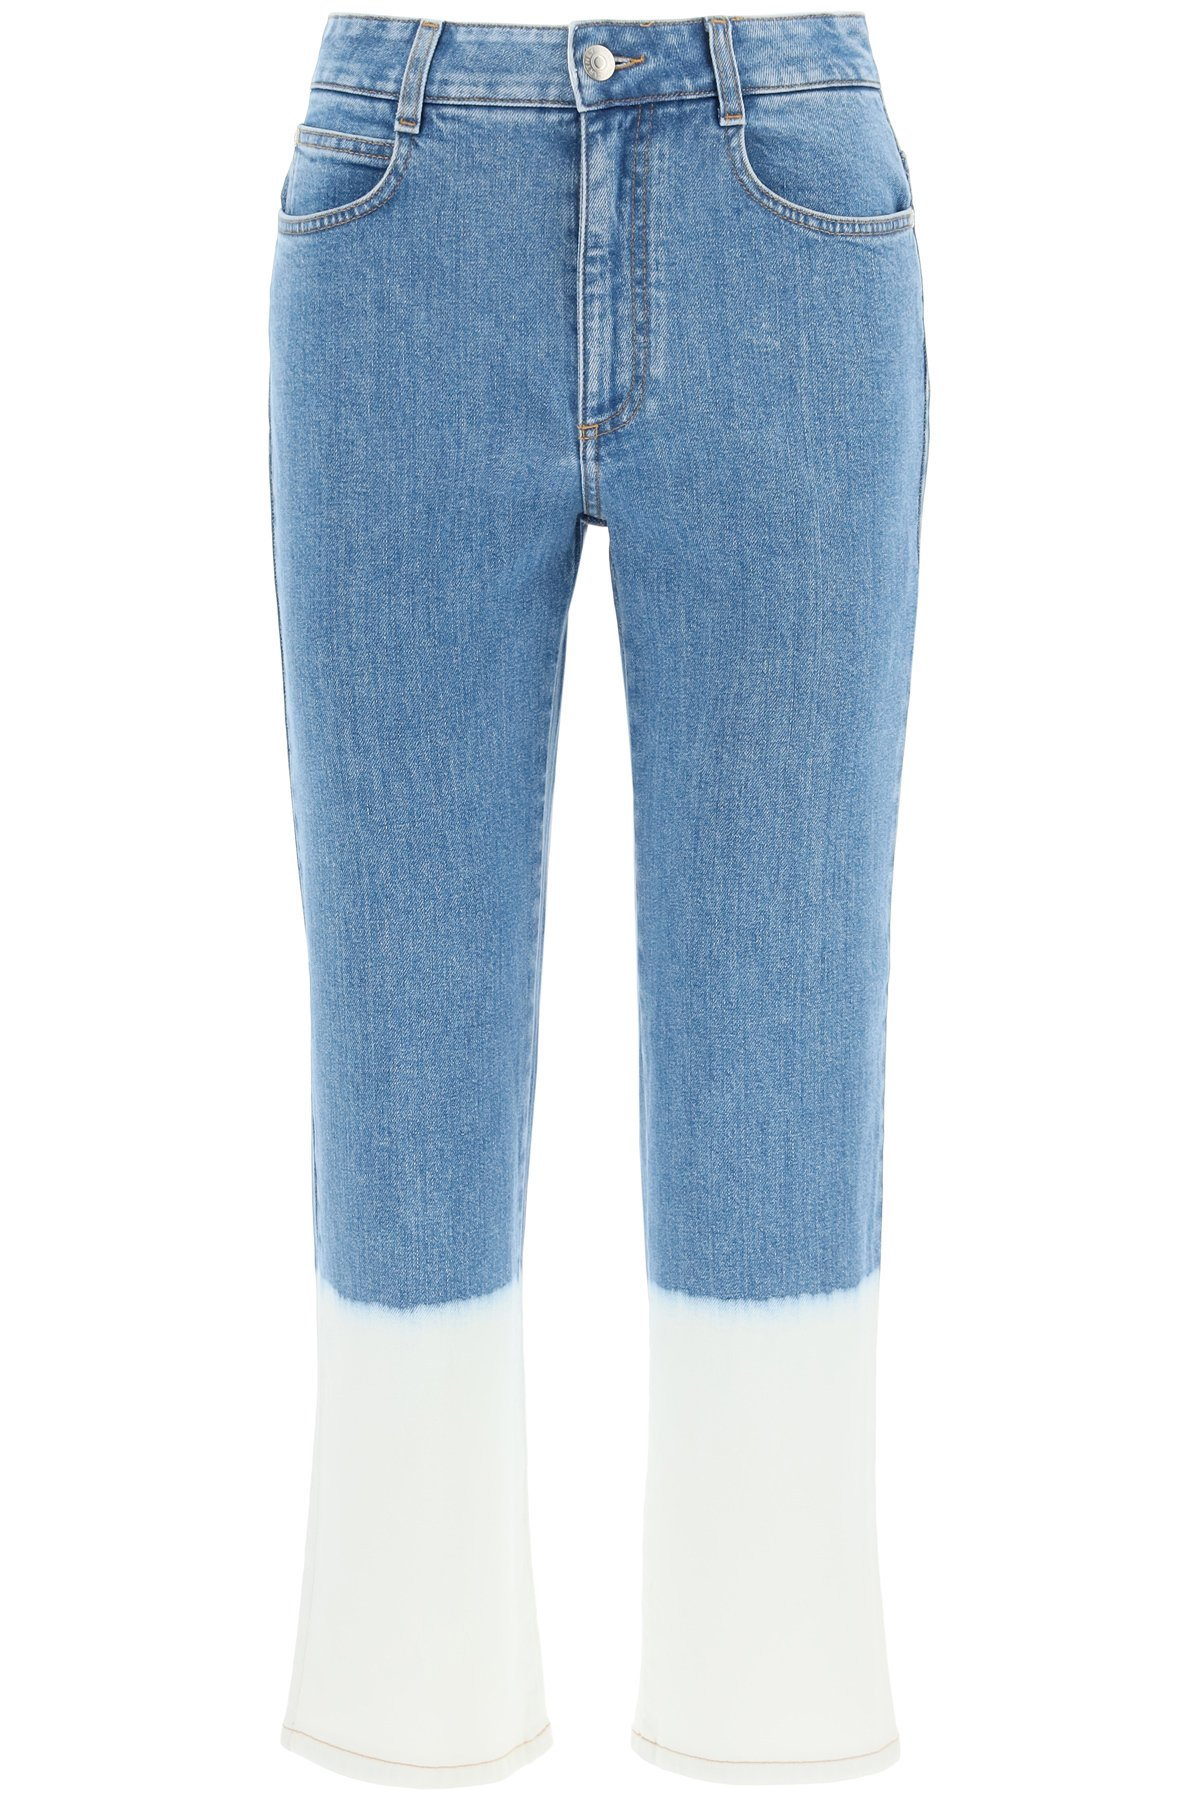 Stella mccartney jeans cropped effetto sbiadito